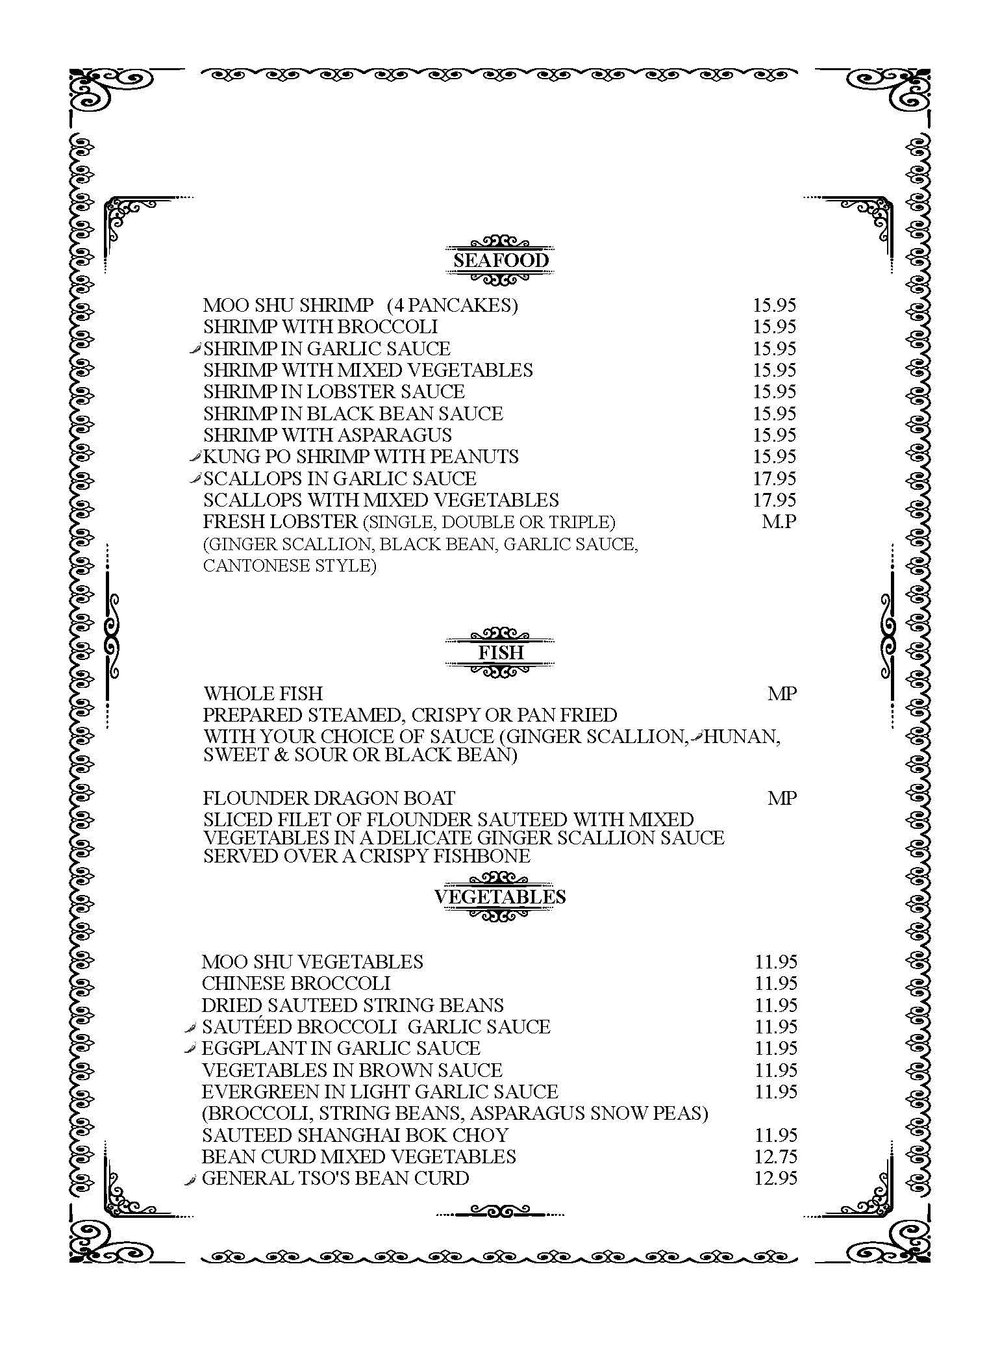 NOBLE EAST DINE IN MENU FOR AMY WEBSITE_Page_07.jpg